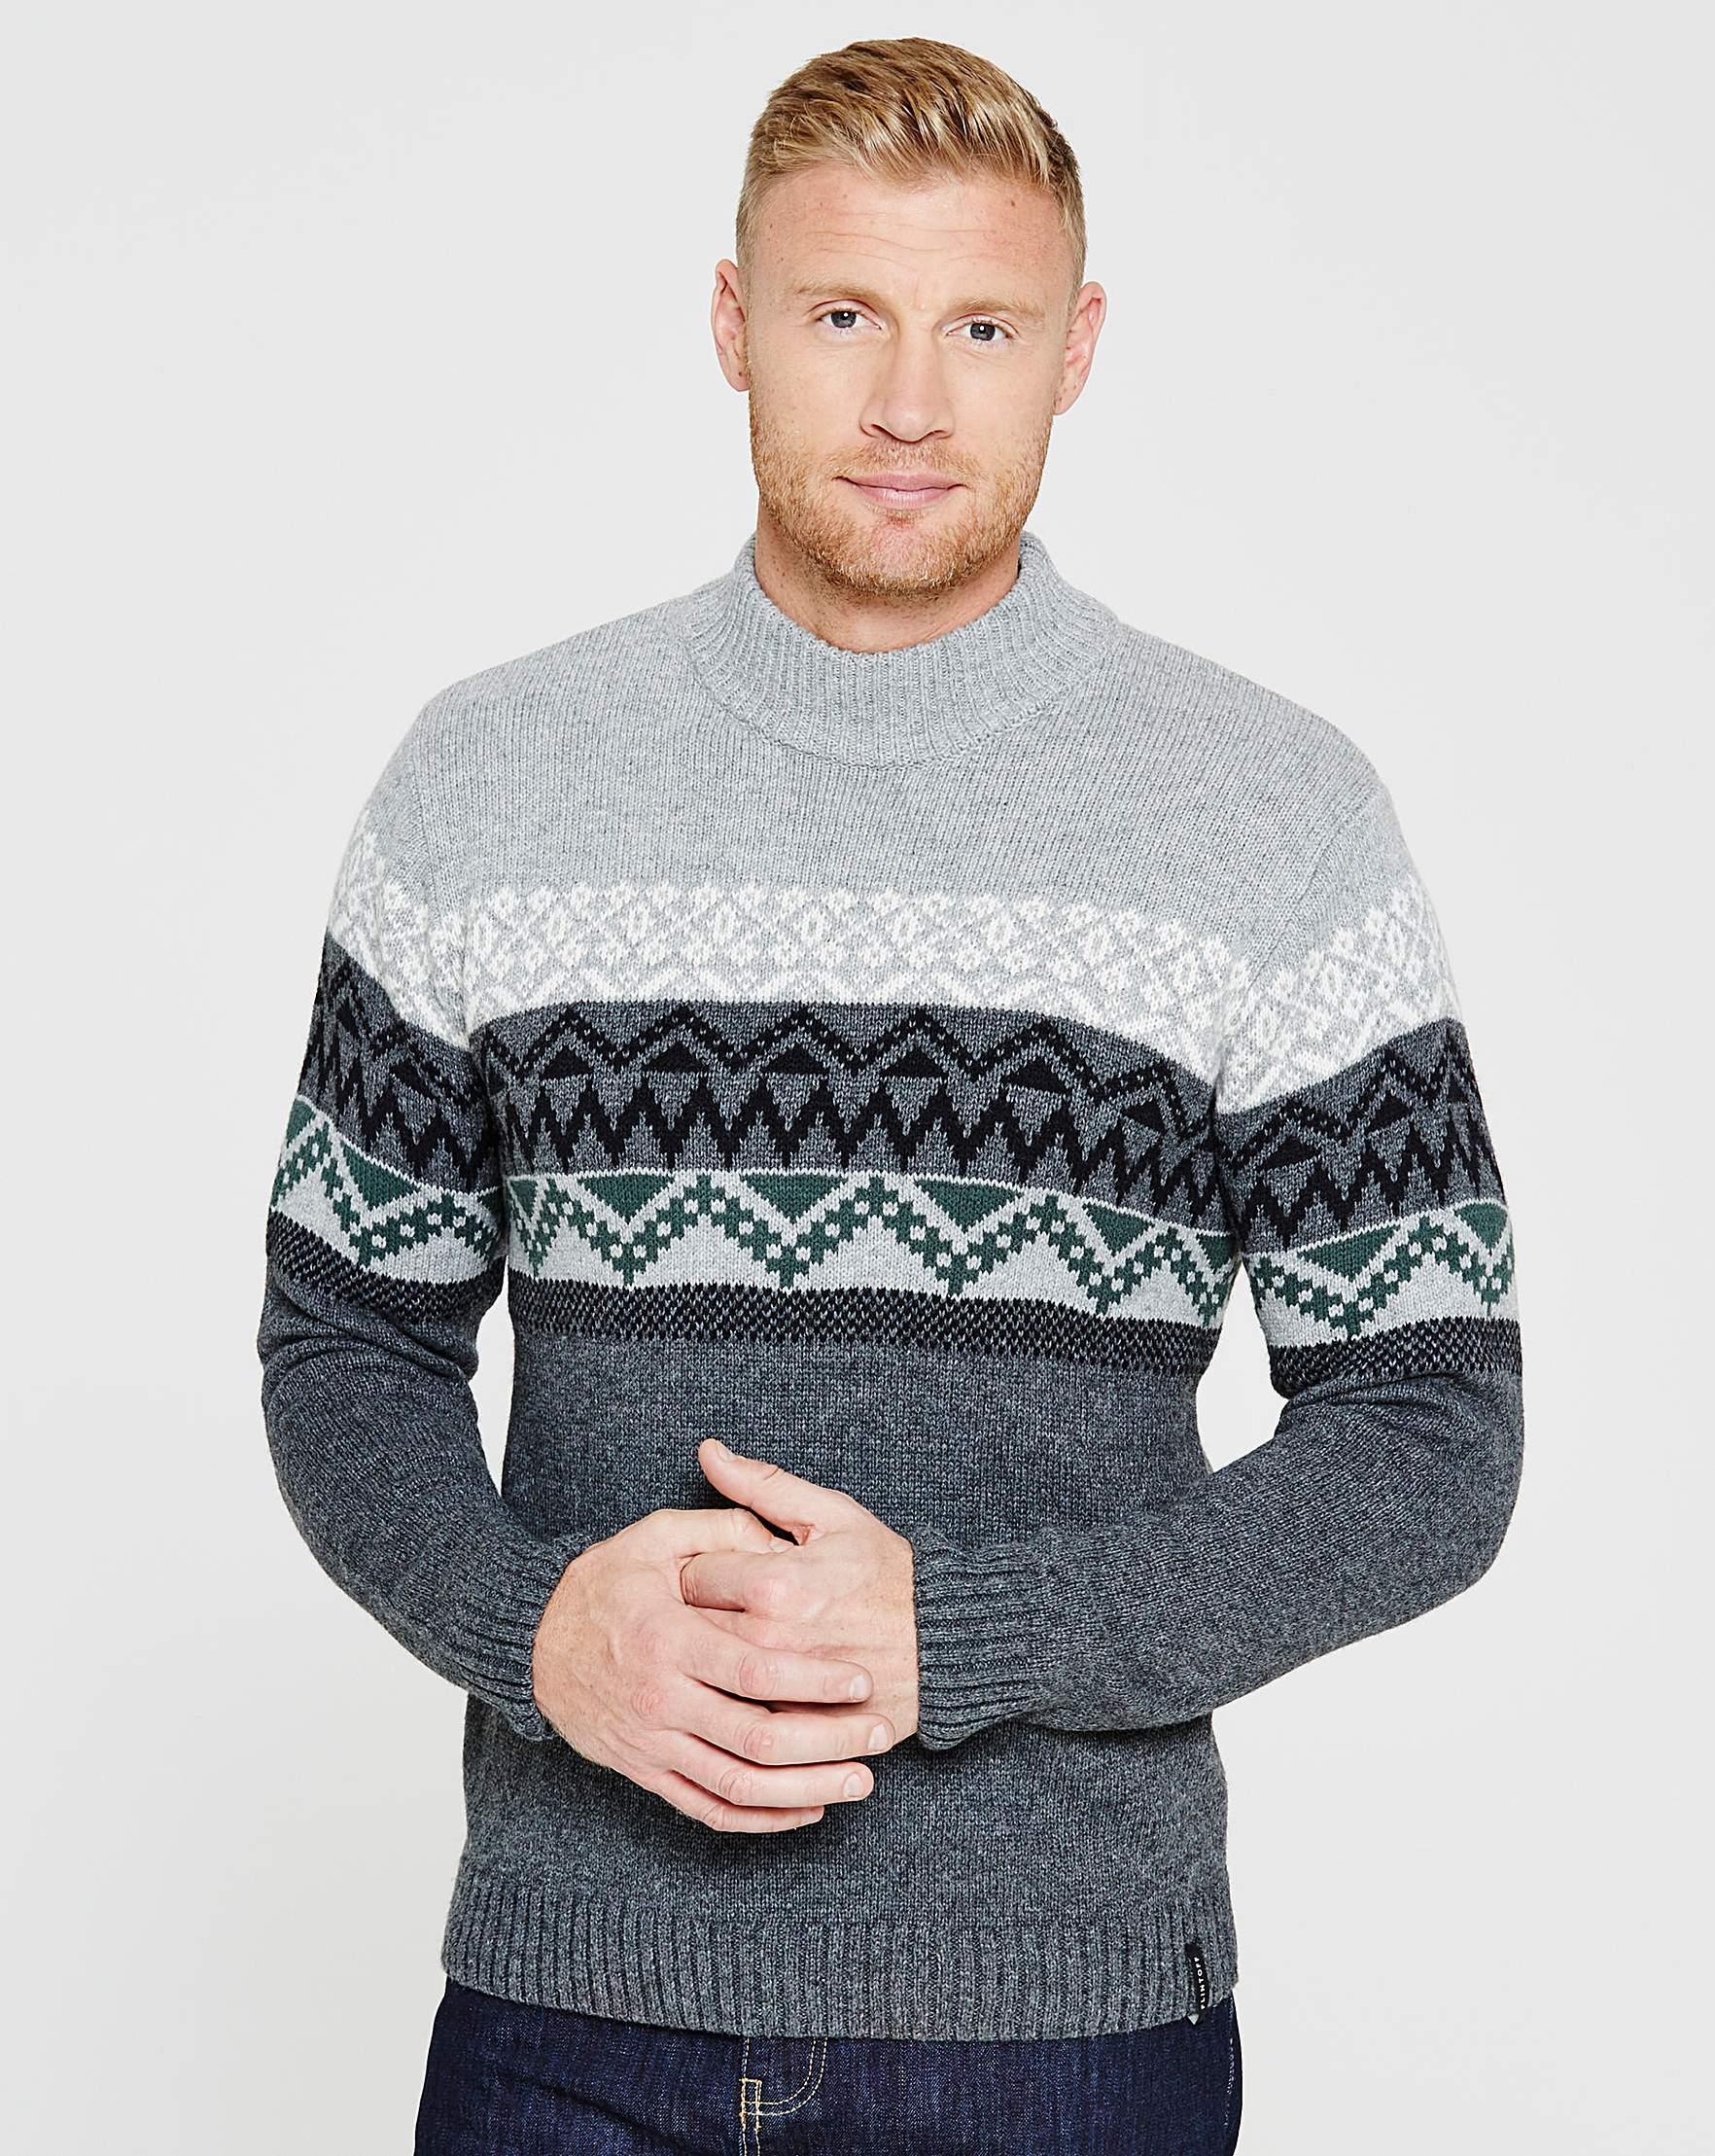 Men\u0027s Jumpers \u0026 Cardigans | Wool \u0026 Knitted | Jacamo